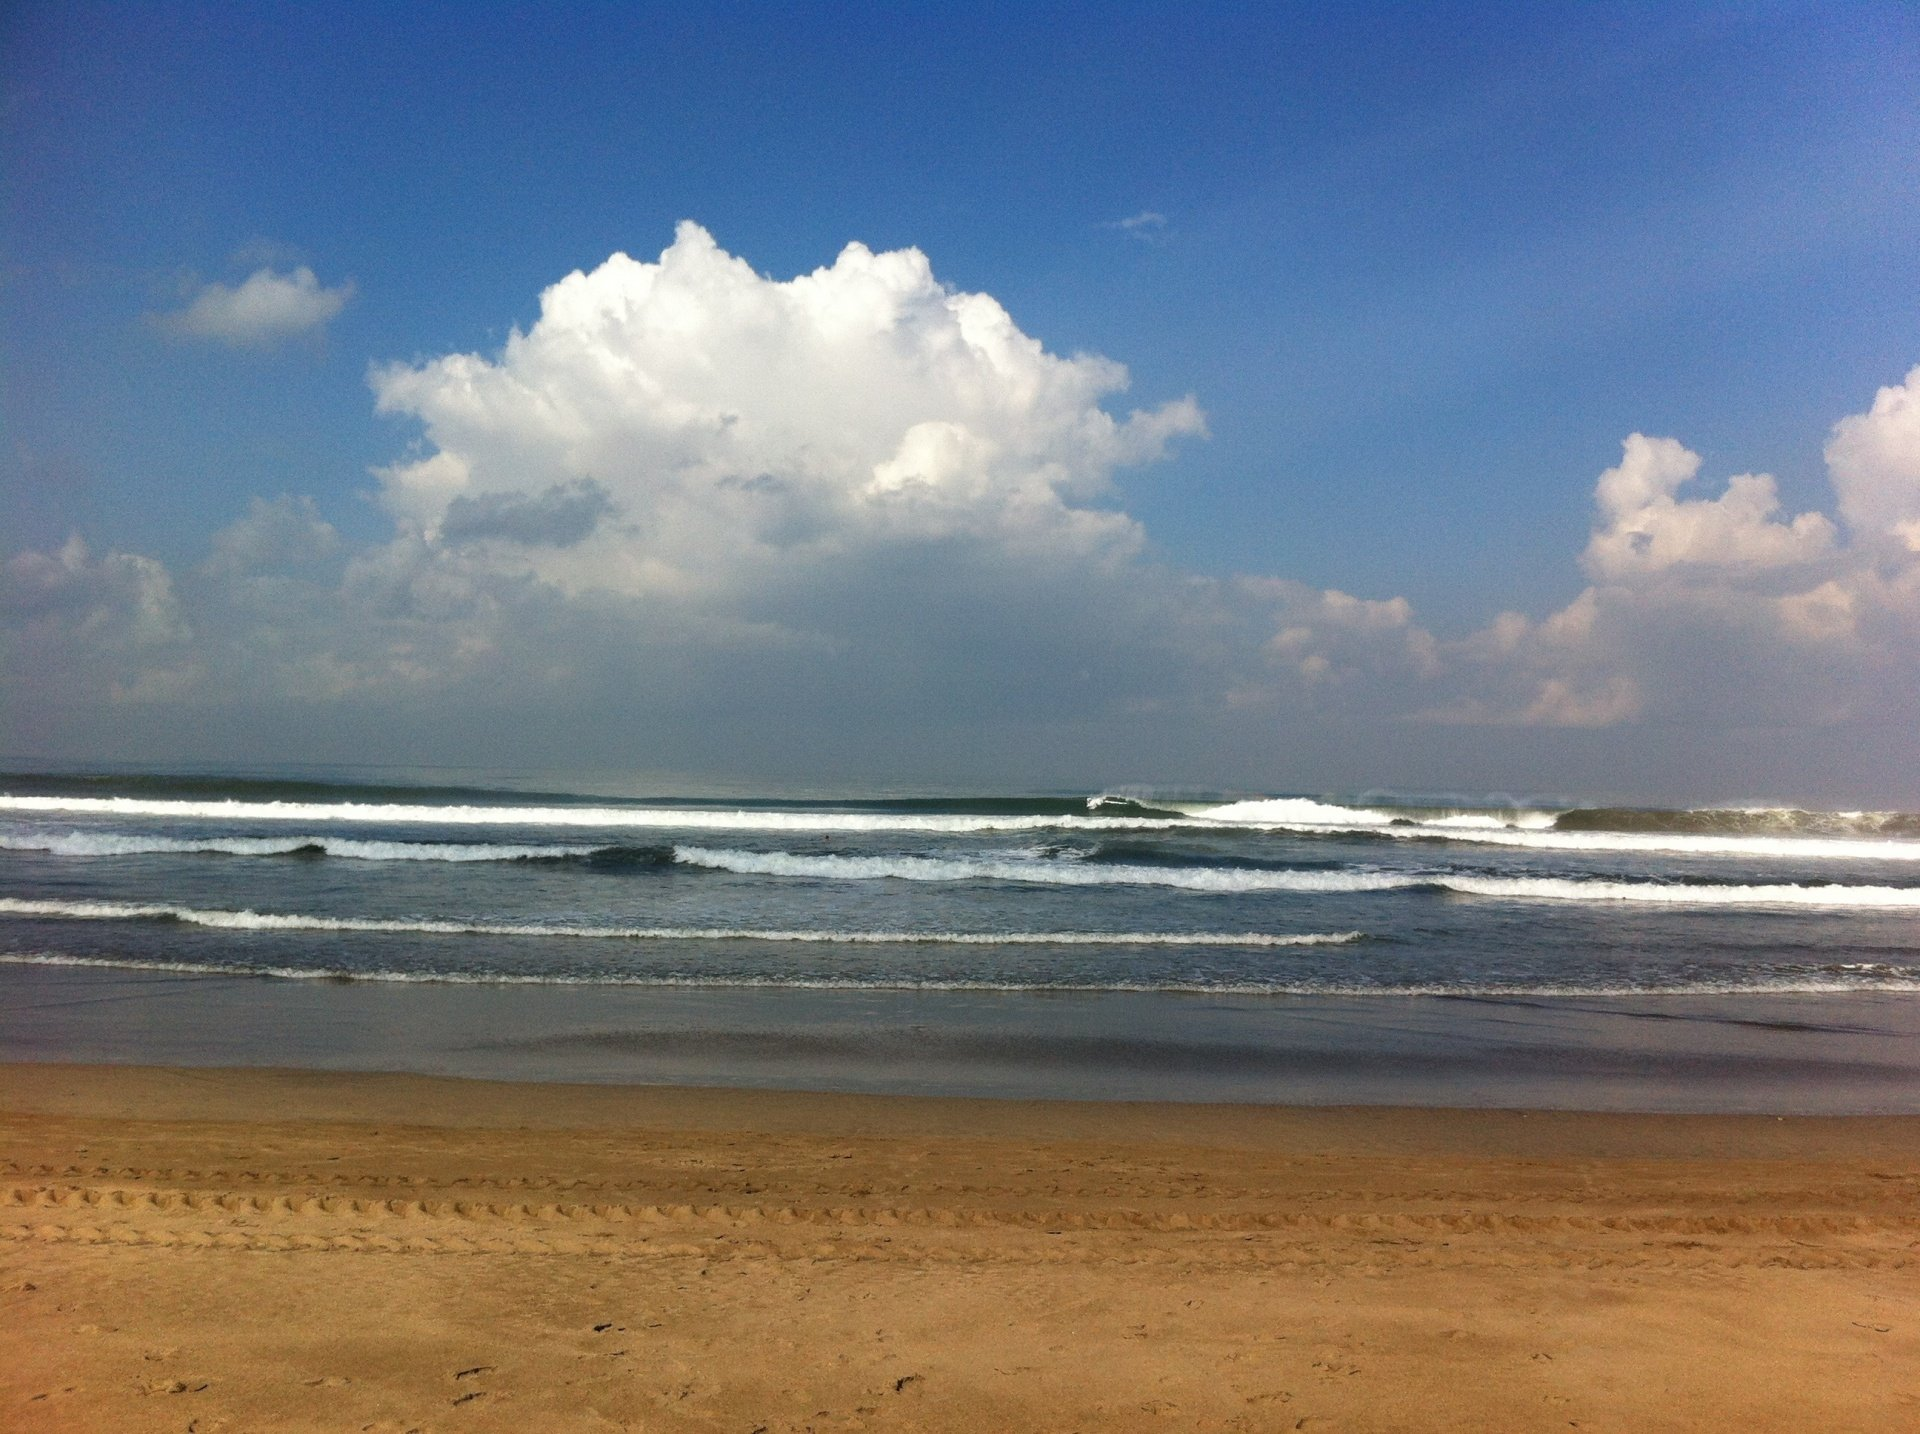 The Surfing Sumo's photo of Kuta